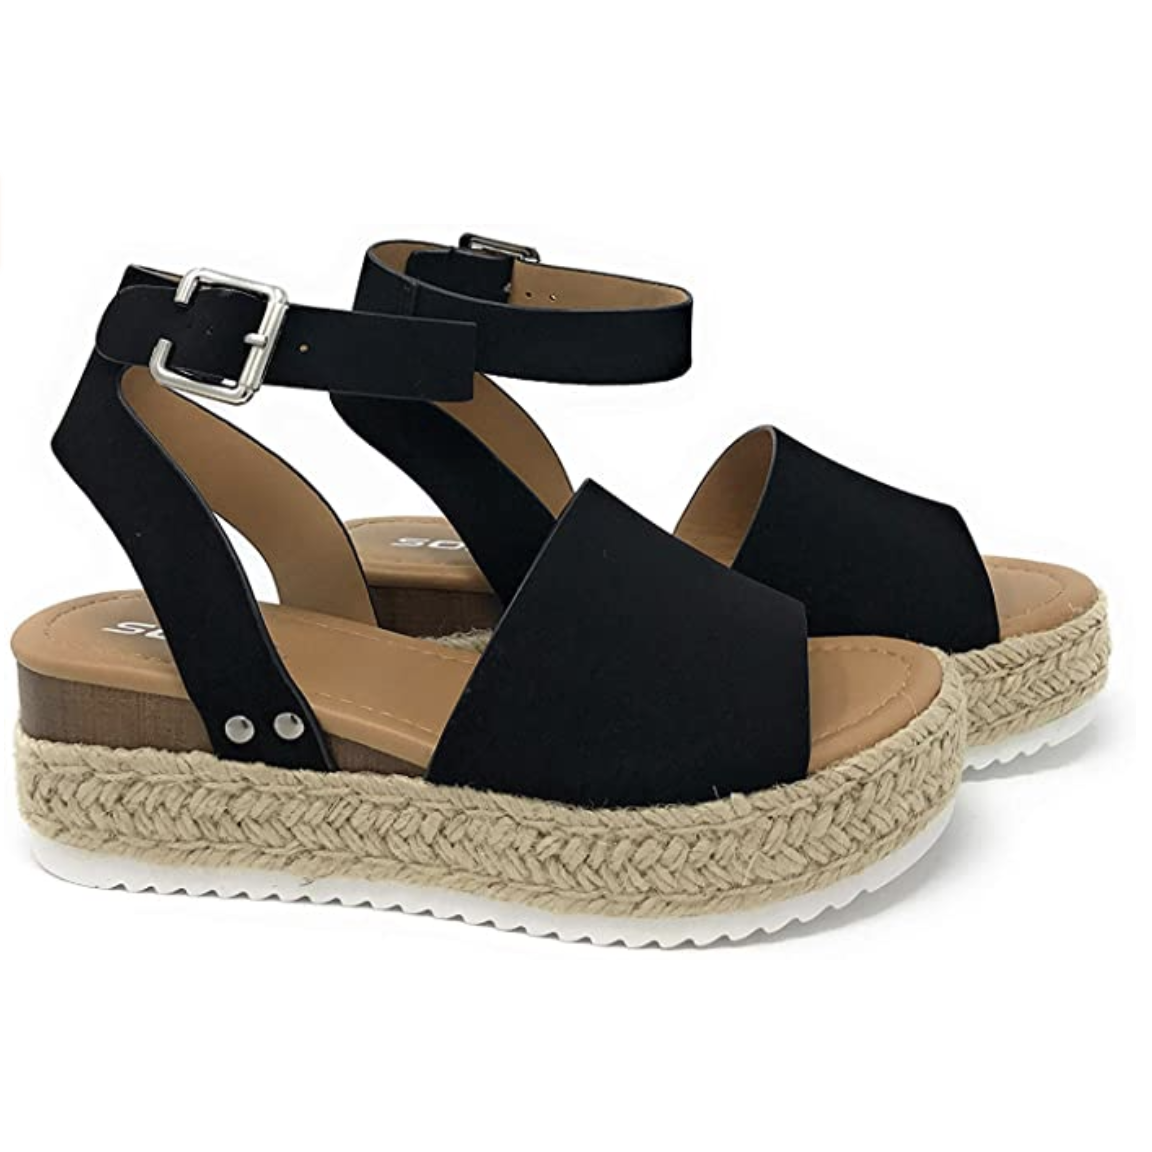 12 Best Sandals on Amazon - Affordable